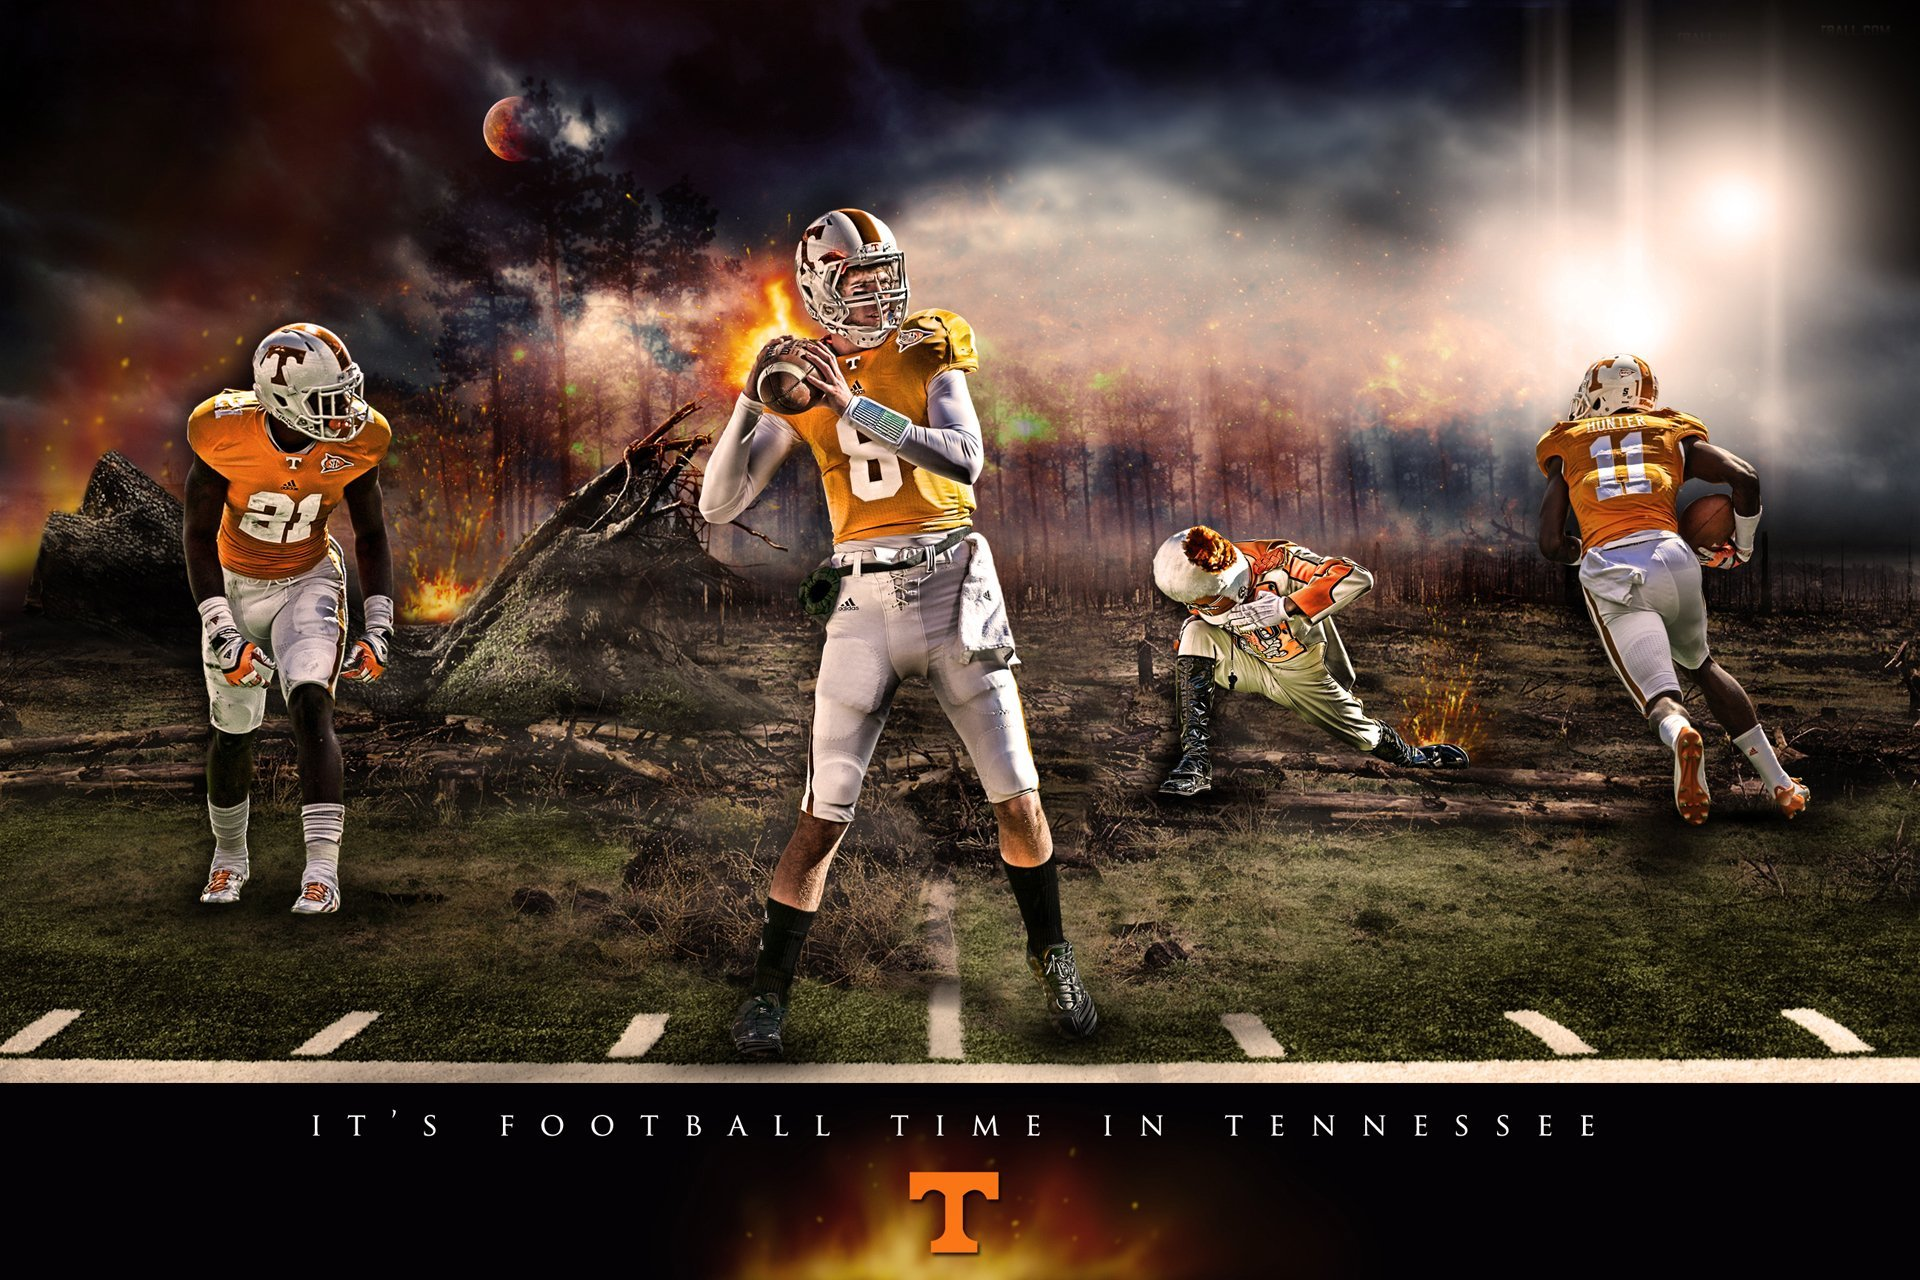 TENNESSEE VOLUNTEERS football college wallpaper 1920x1280 595866 1920x1280